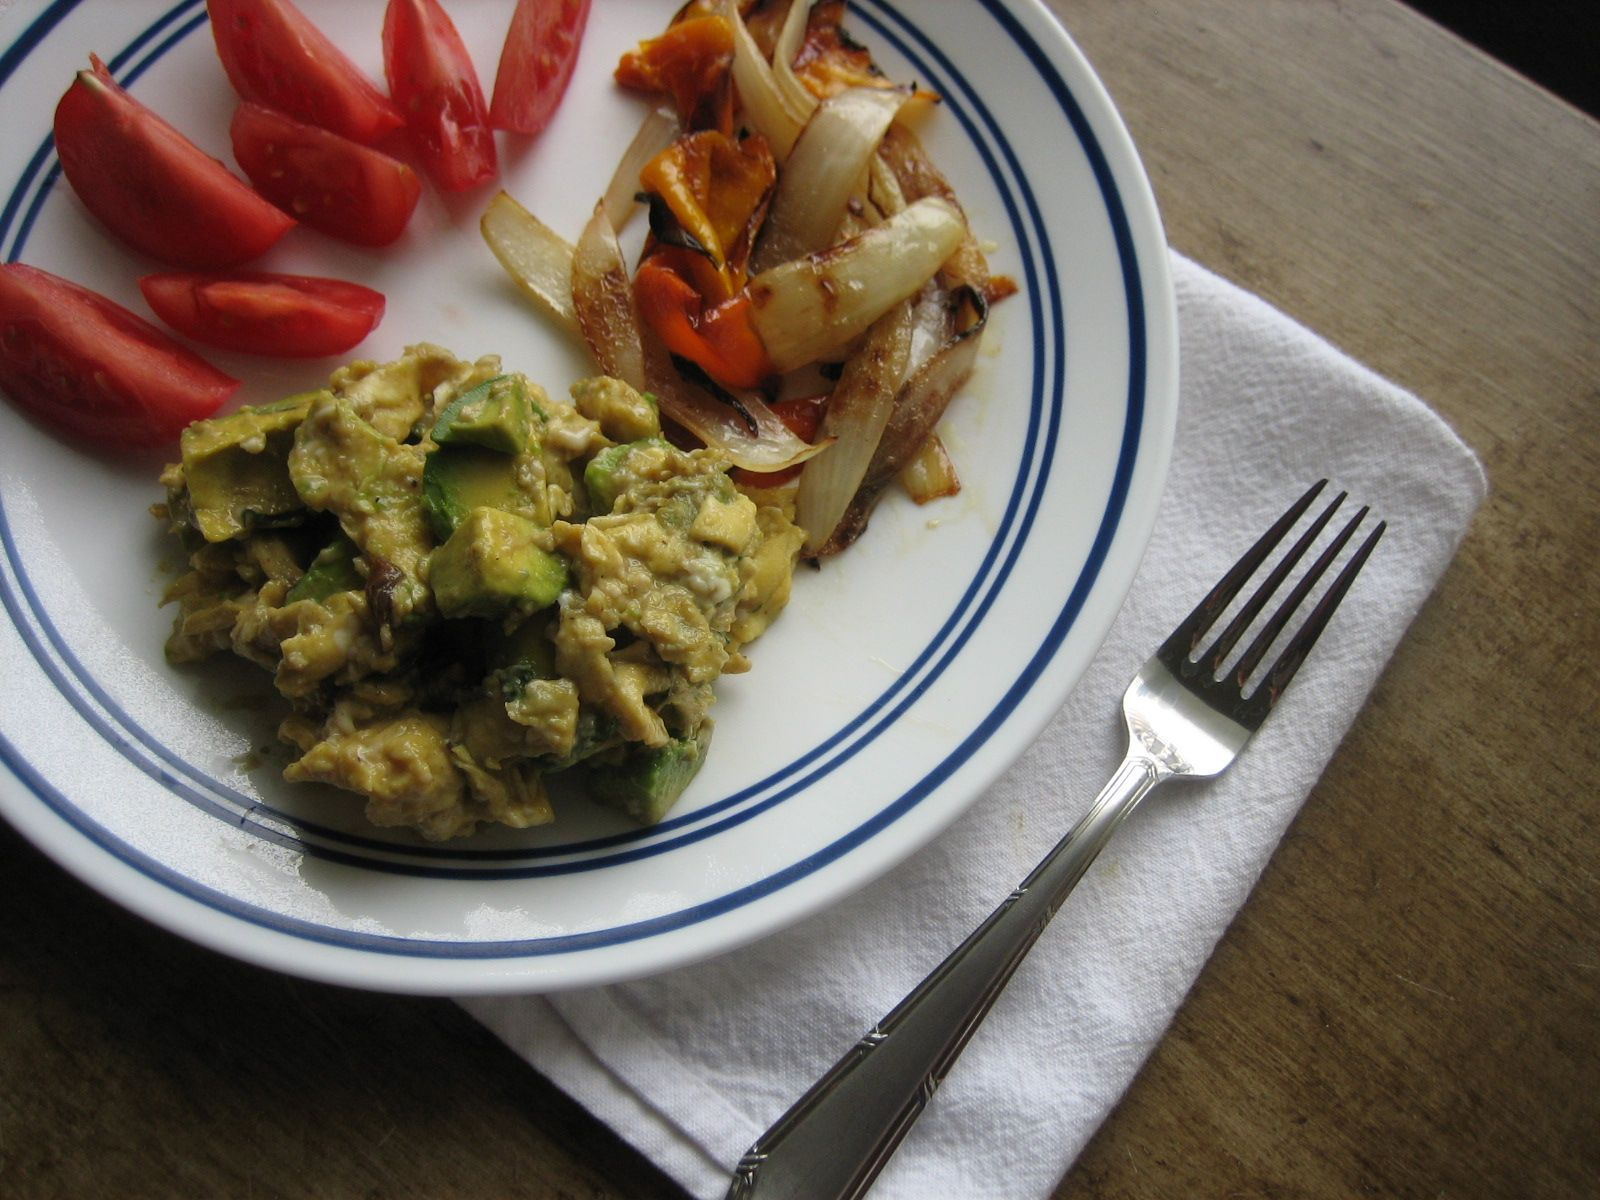 Ideas for Avocado: Avocado Scrambled Eggs (green eggs and ham) and Omelettes #greeneggsandhamrecipe Green Eggs and Ham-Taste of Divine #greeneggsandhamrecipe Ideas for Avocado: Avocado Scrambled Eggs (green eggs and ham) and Omelettes #greeneggsandhamrecipe Green Eggs and Ham-Taste of Divine #greeneggsandhamrecipe Ideas for Avocado: Avocado Scrambled Eggs (green eggs and ham) and Omelettes #greeneggsandhamrecipe Green Eggs and Ham-Taste of Divine #greeneggsandhamrecipe Ideas for Avocado: Avocado #greeneggsandhamrecipe